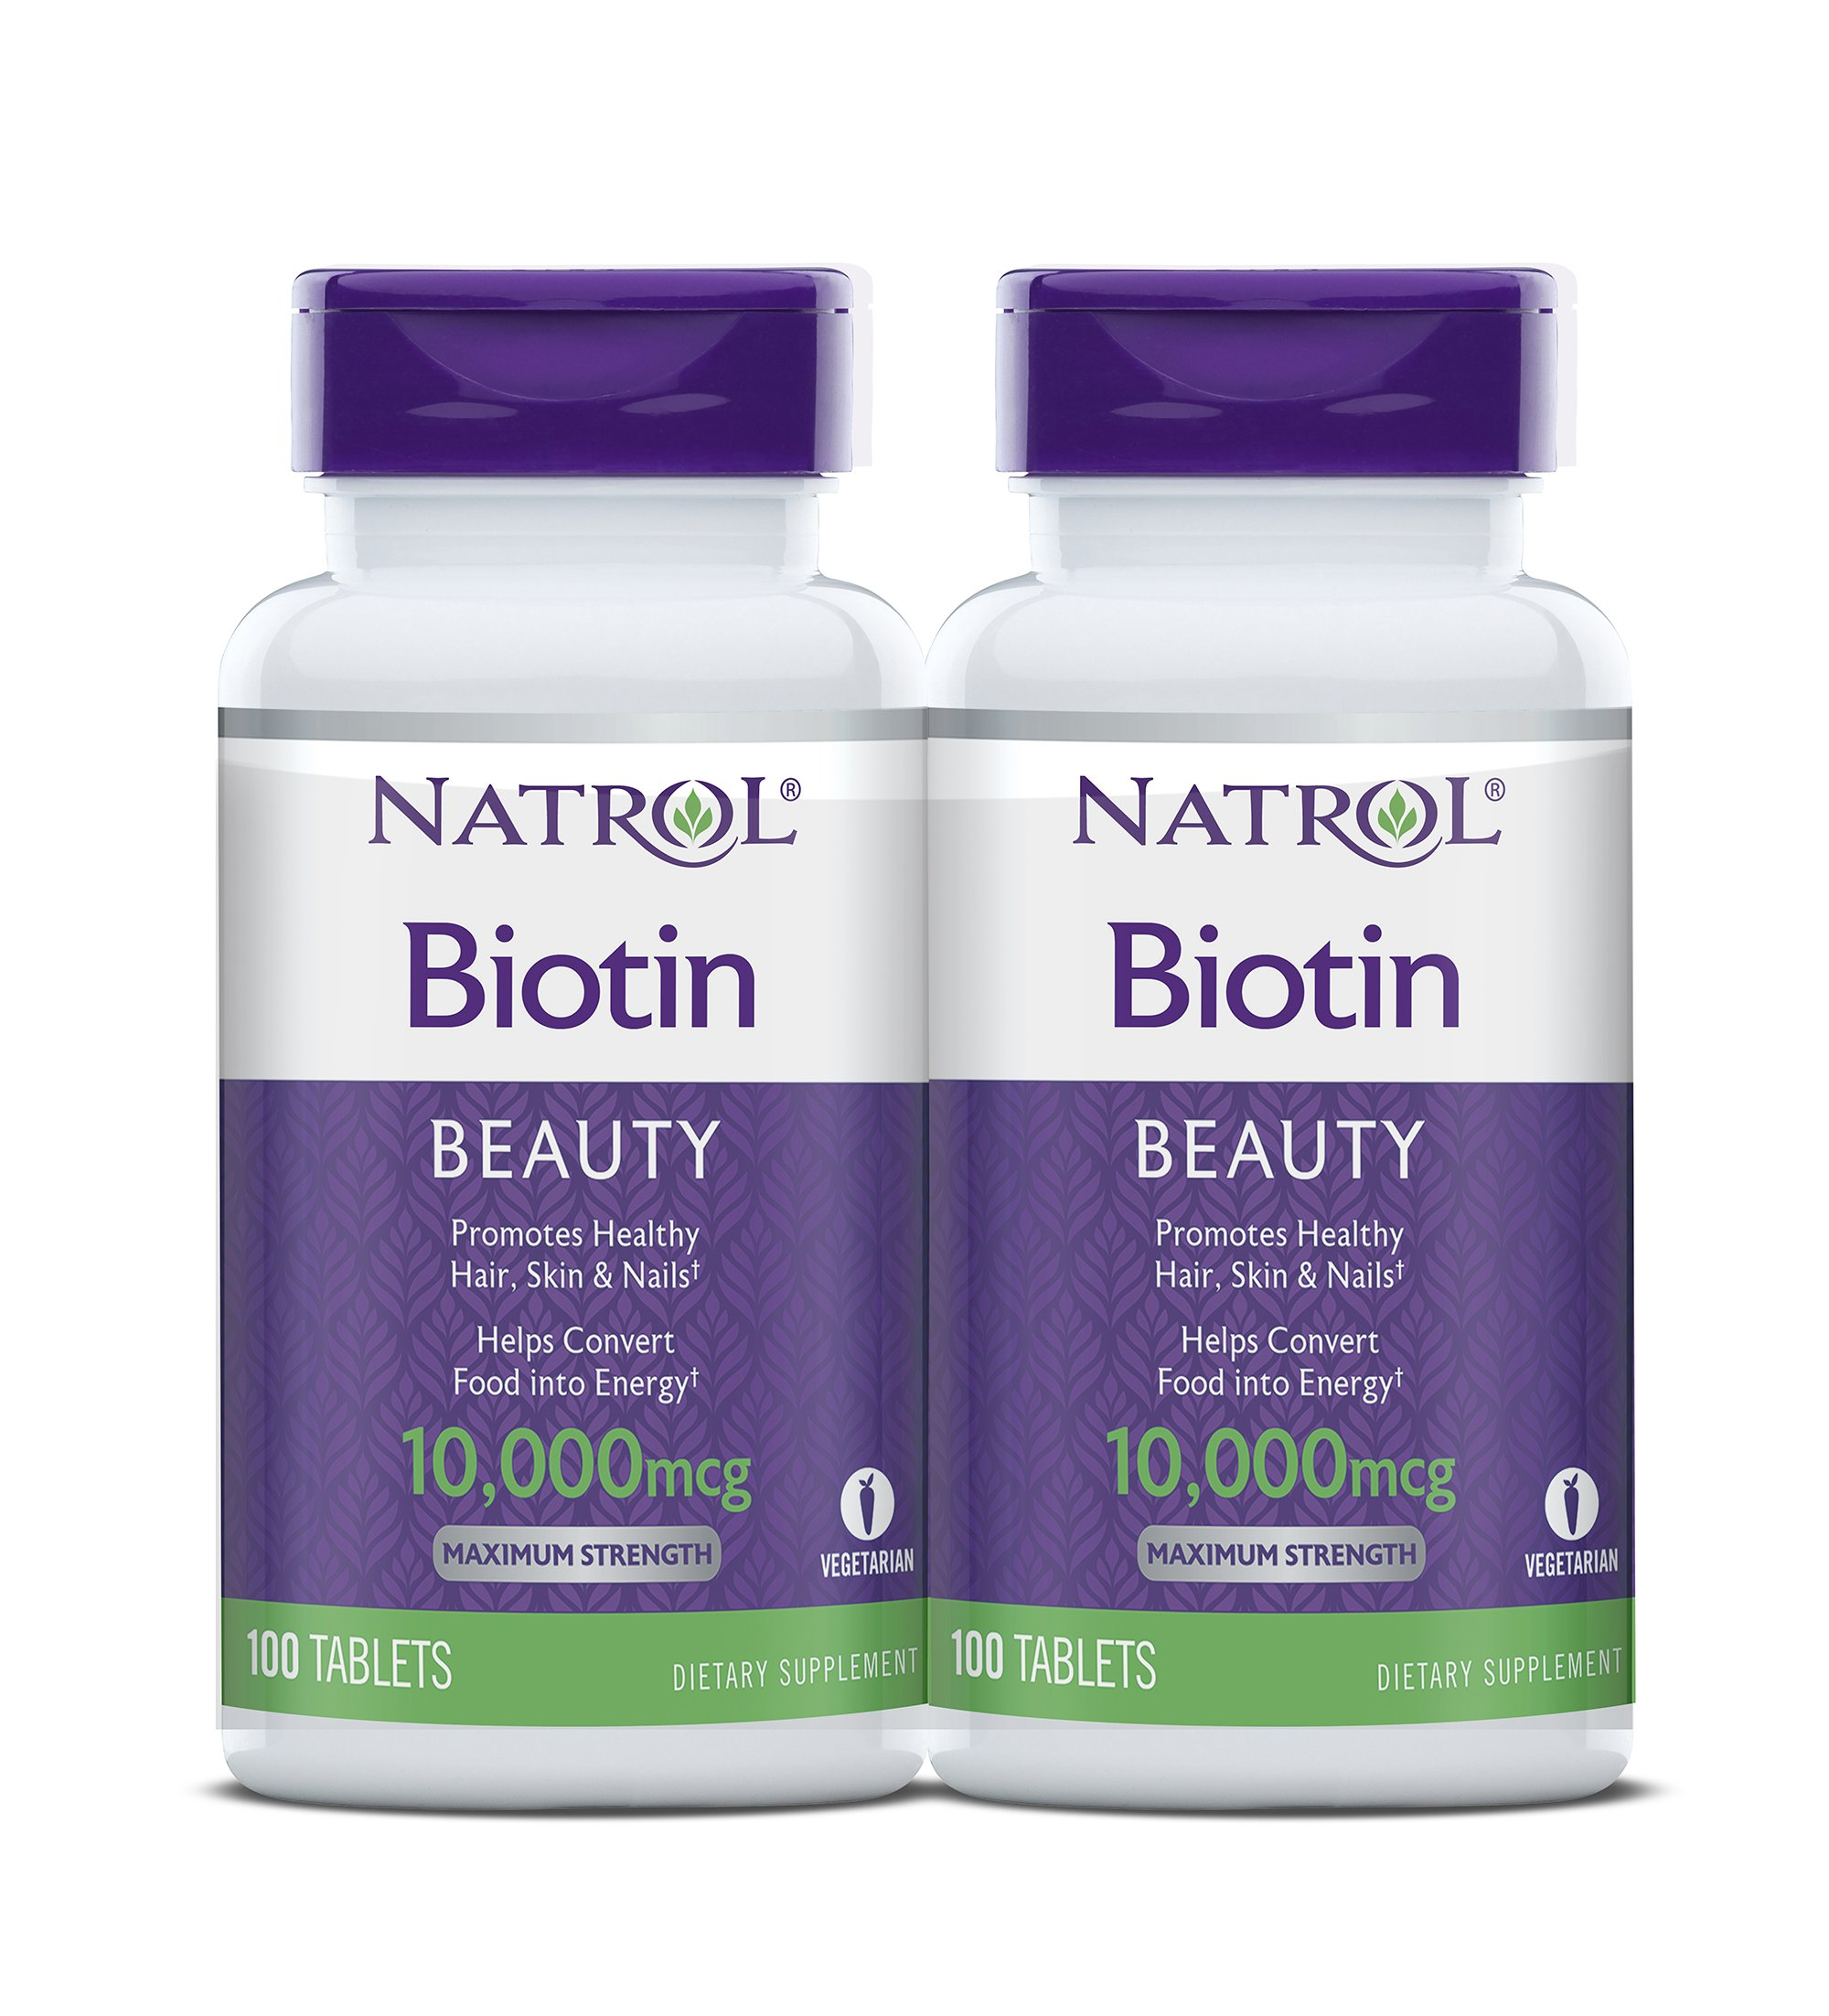 Natrol Biotin Beauty Tablets, Promotes Healthy Hair, Skin and Nails, Helps Support Energy Metabolism, Helps Convert Food Into Energy, Maximum Strength, 10,000mcg, 100 Count (Pack of 2) by Natrol